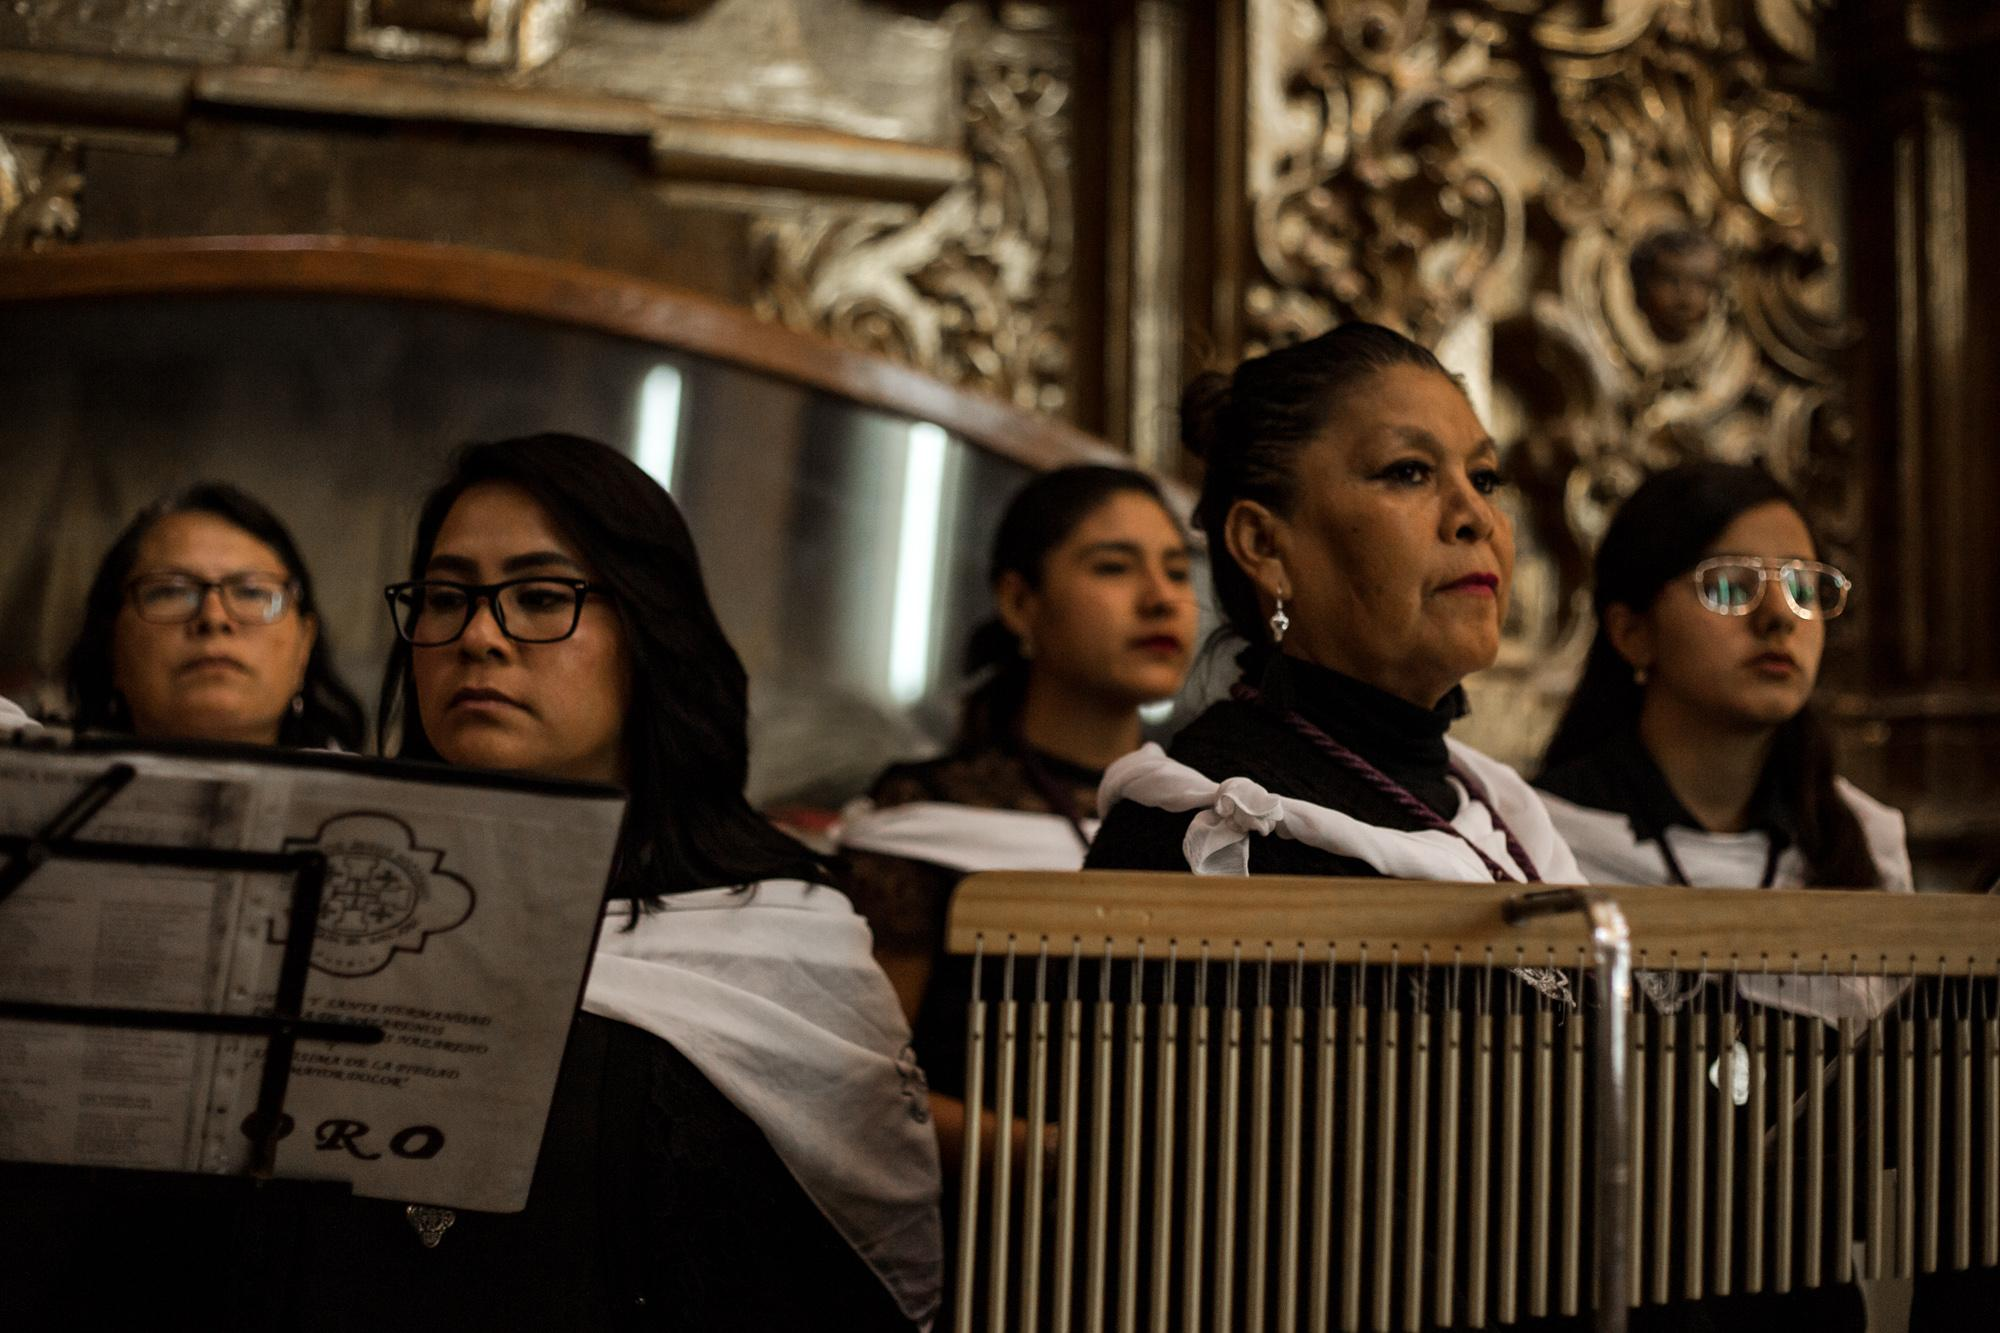 Women in the confraternity play a different role usually in the choir or the band but none of them can take part in the decision-making of the group.